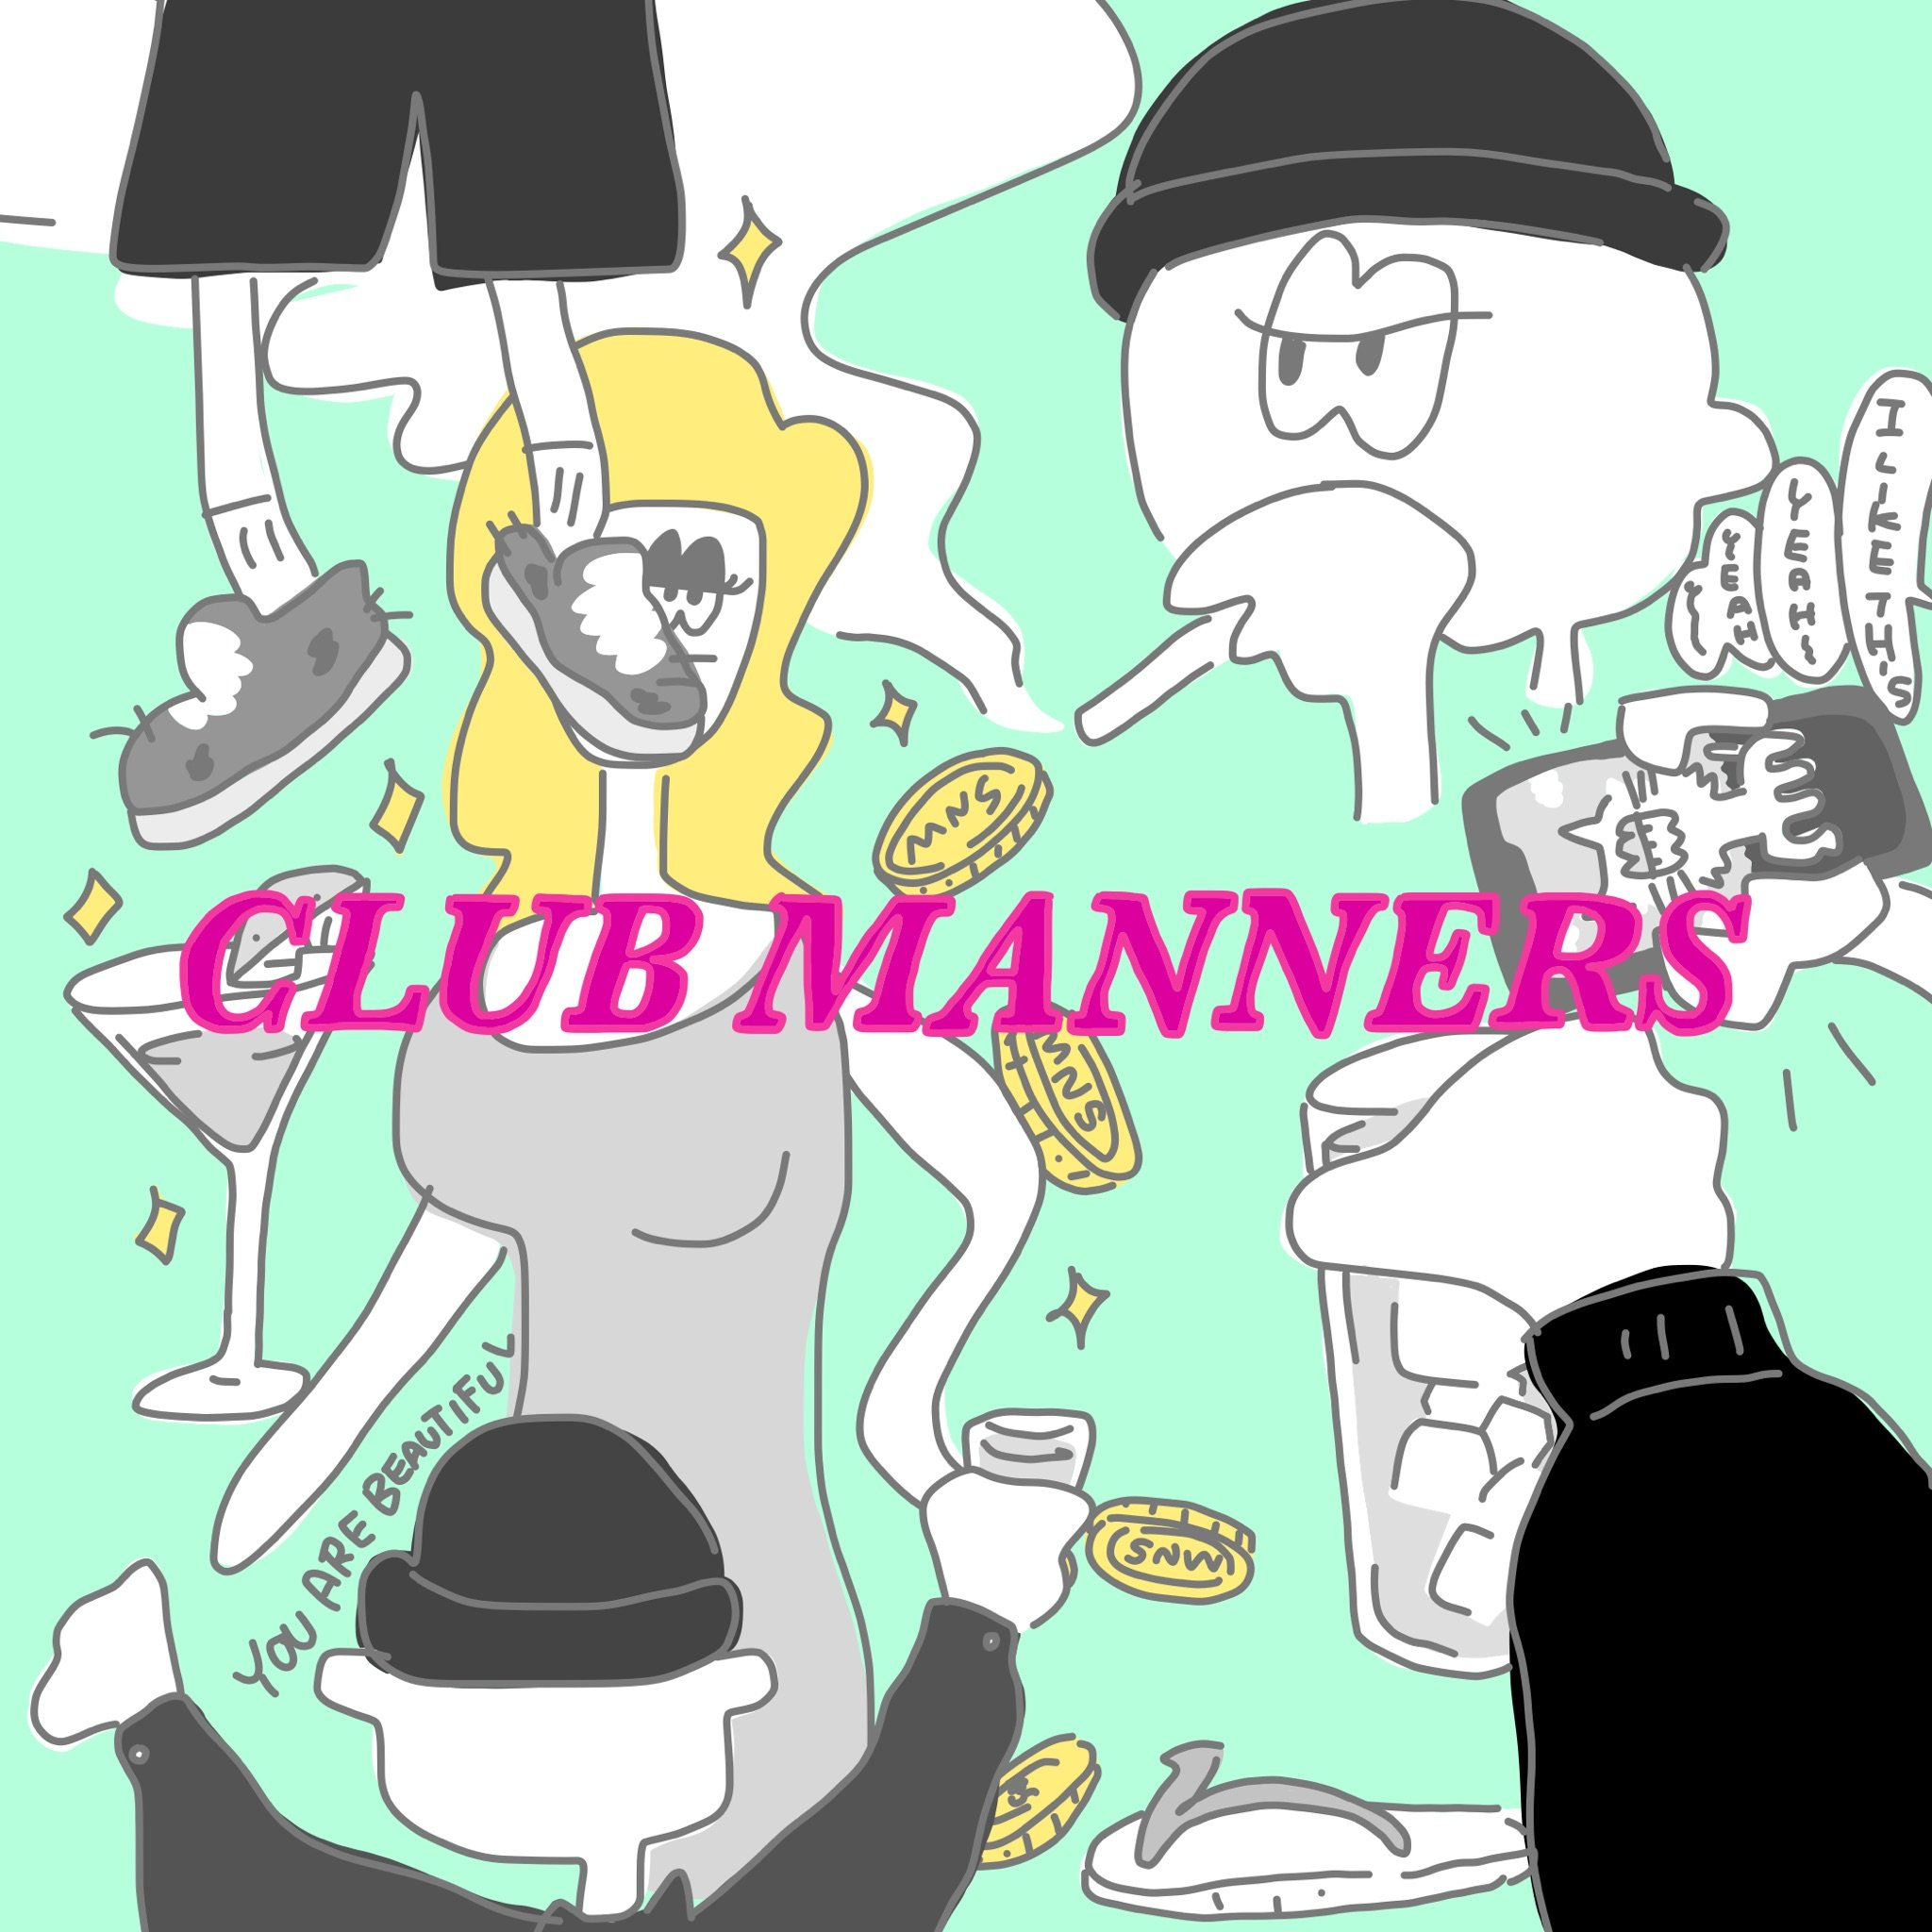 Club Manners by MANNERS KNOWS